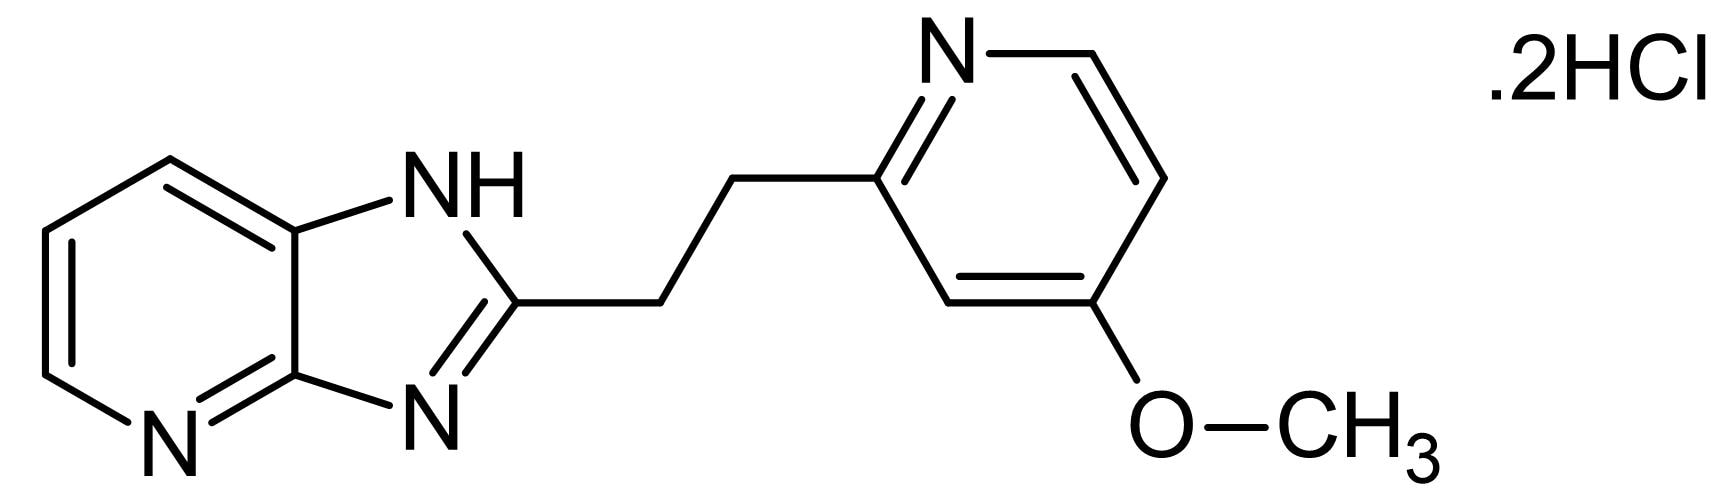 Chemical Structure - BYK 191023 dihydrochloride, iNOS inhibitor (ab146441)